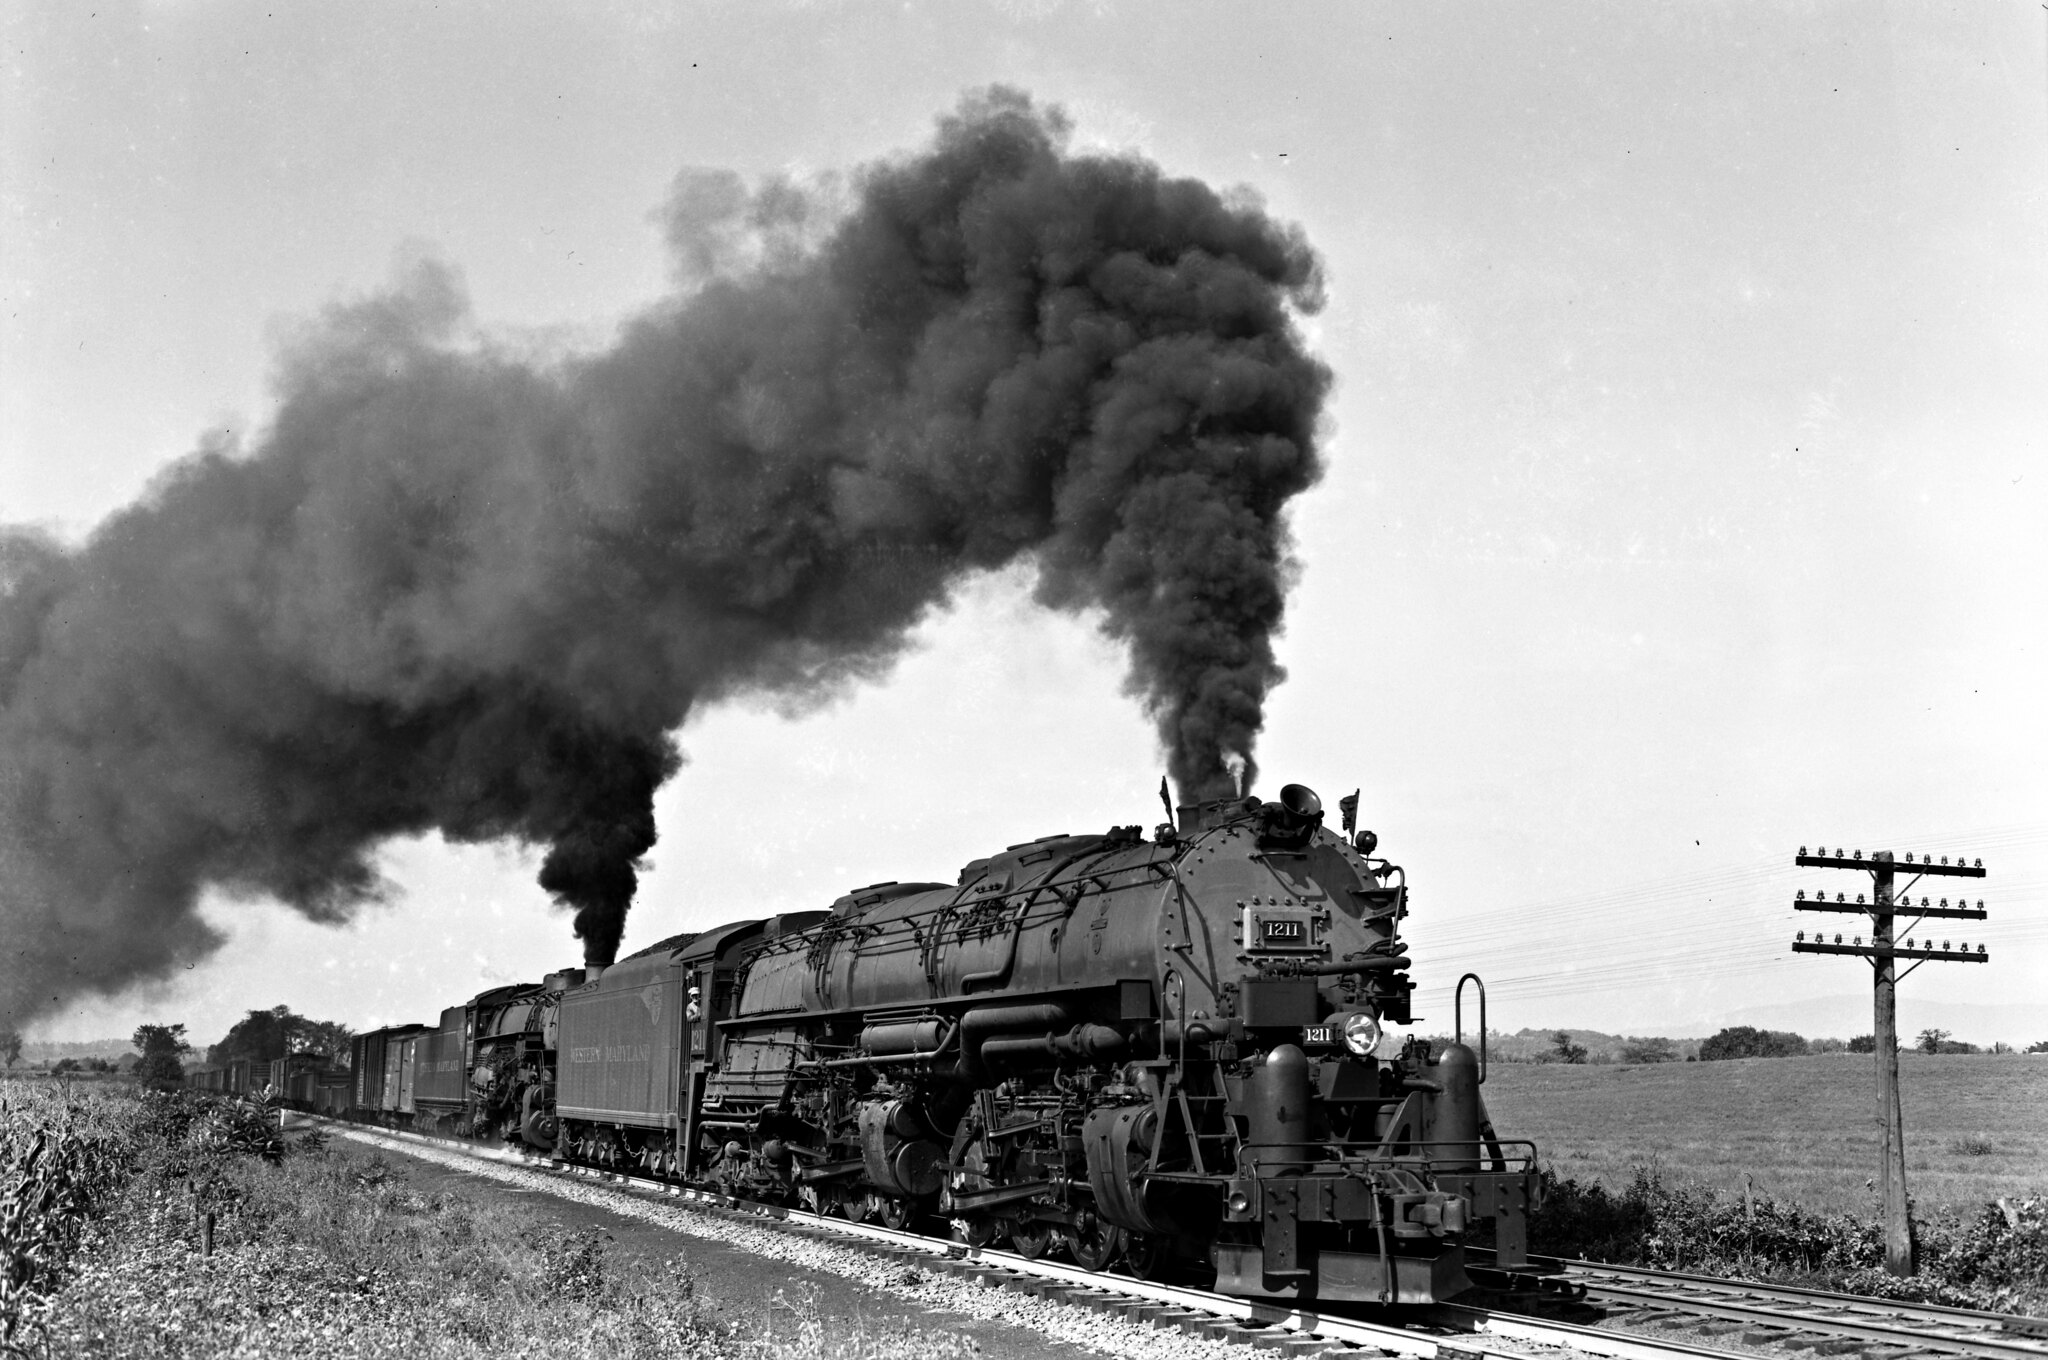 Western Maryland Railway – Center for Railroad Photography & Art